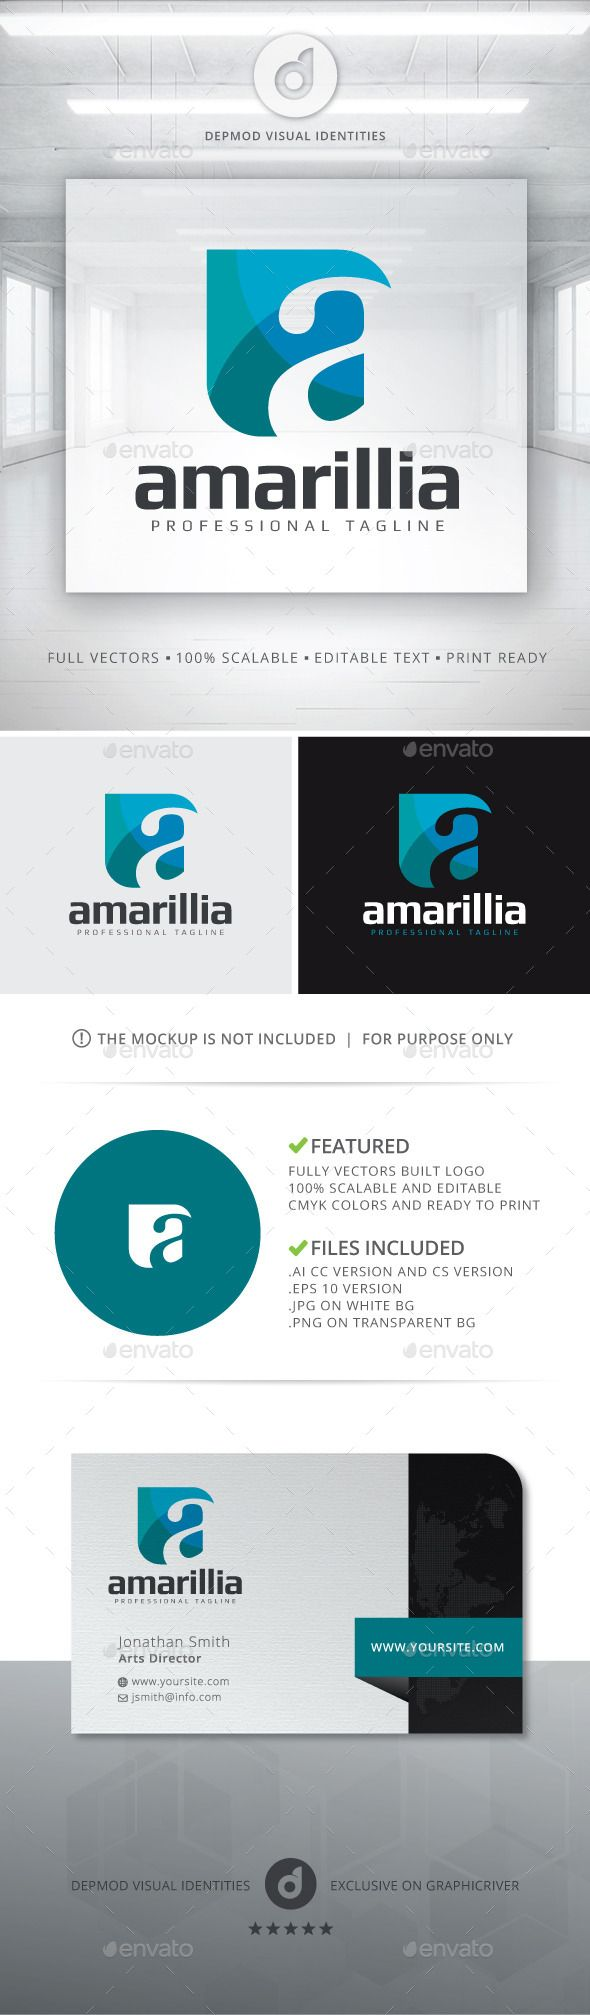 Amarilla Logo Proposal by Opaq Informations for this logo :Logo : Logo of a stylized «a» letter in mosaic shape.Specifications :- Vector based- Editable text- CM